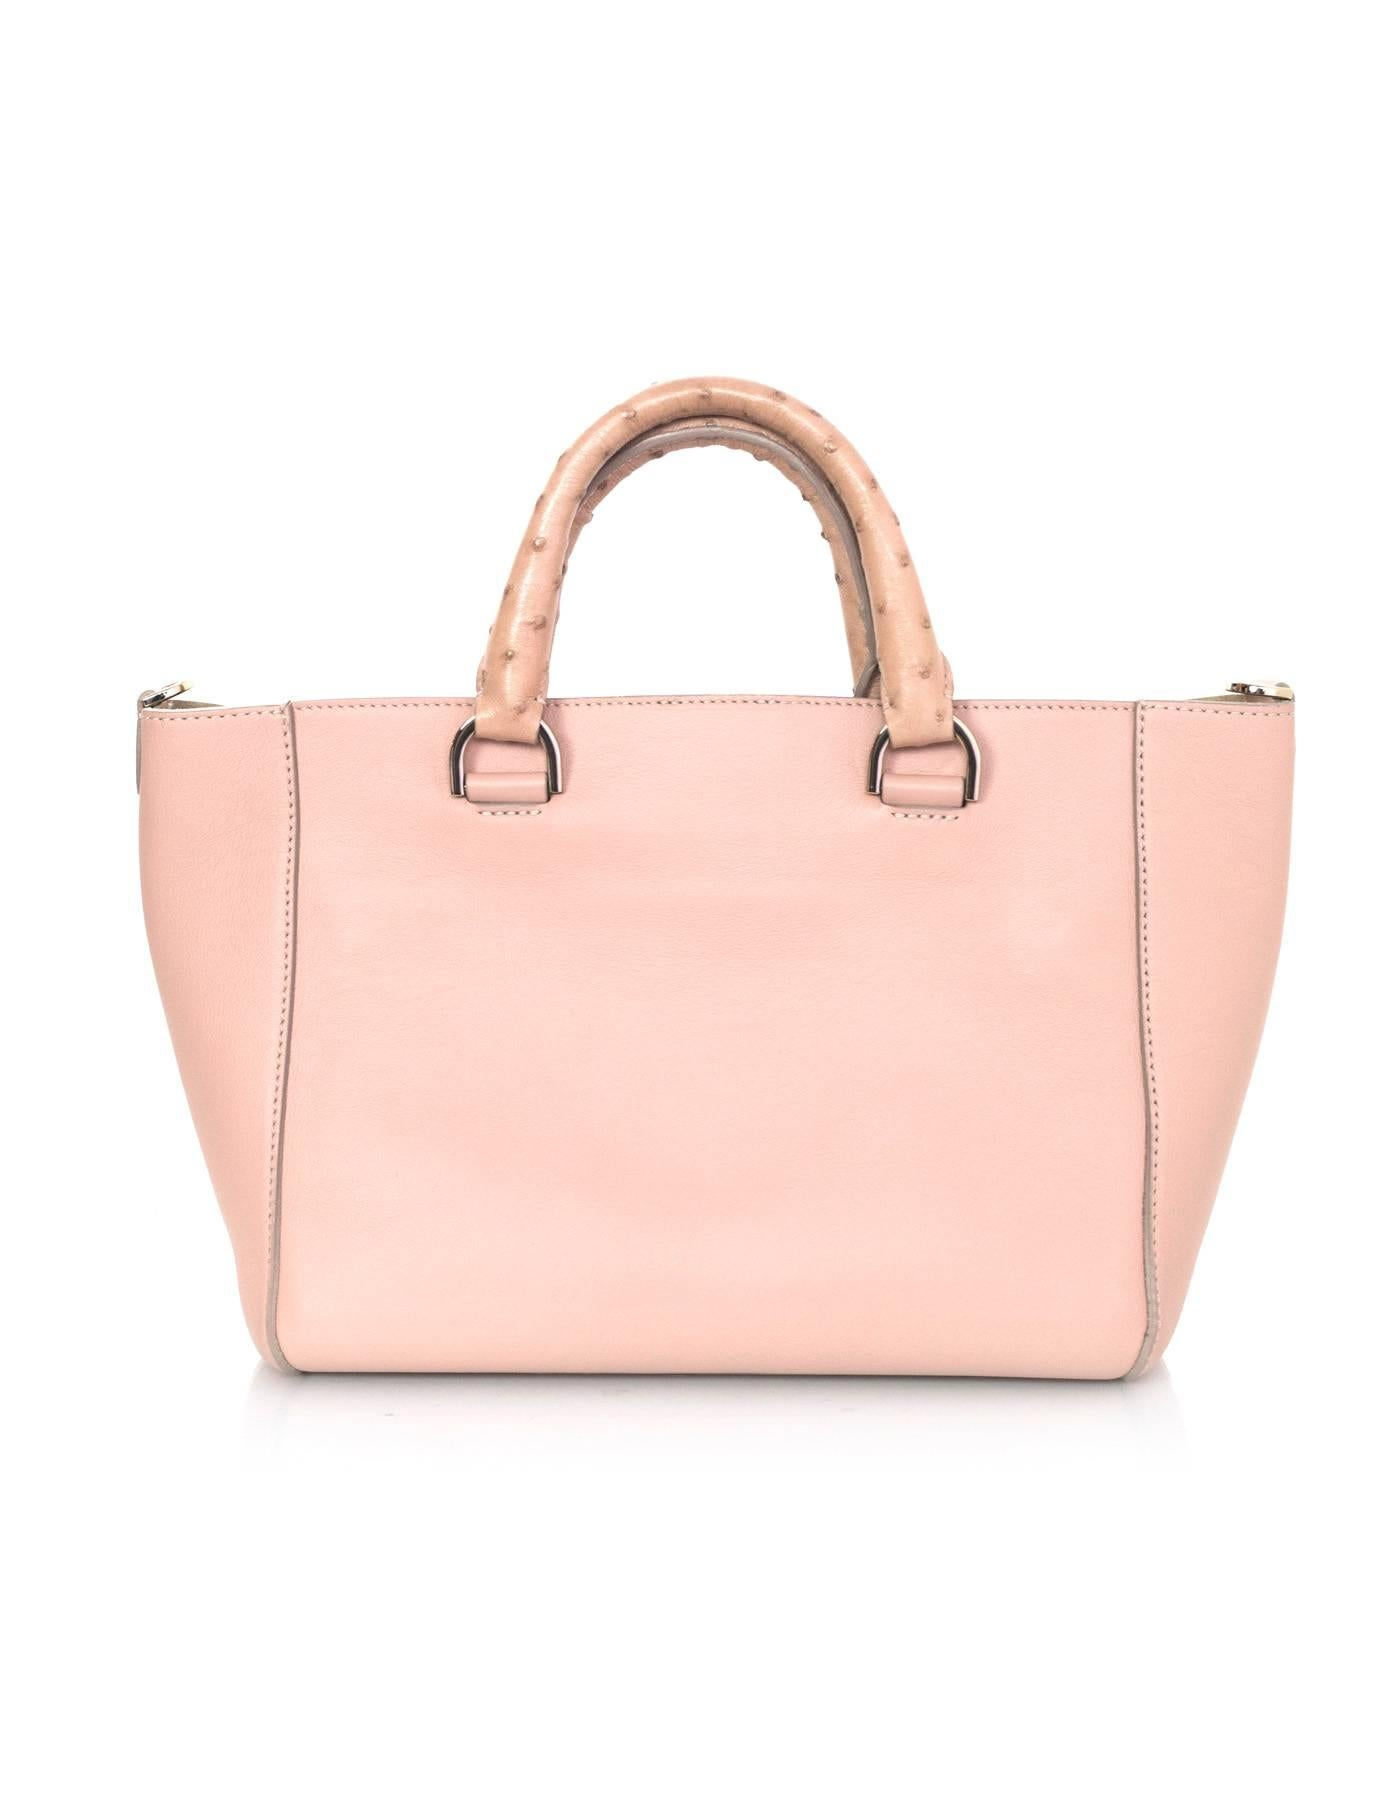 5f8d780de0 Mulberry Pink Leather and Ostrich Small Convertible Willow Tote Bag w/  Strap For Sale at 1stdibs